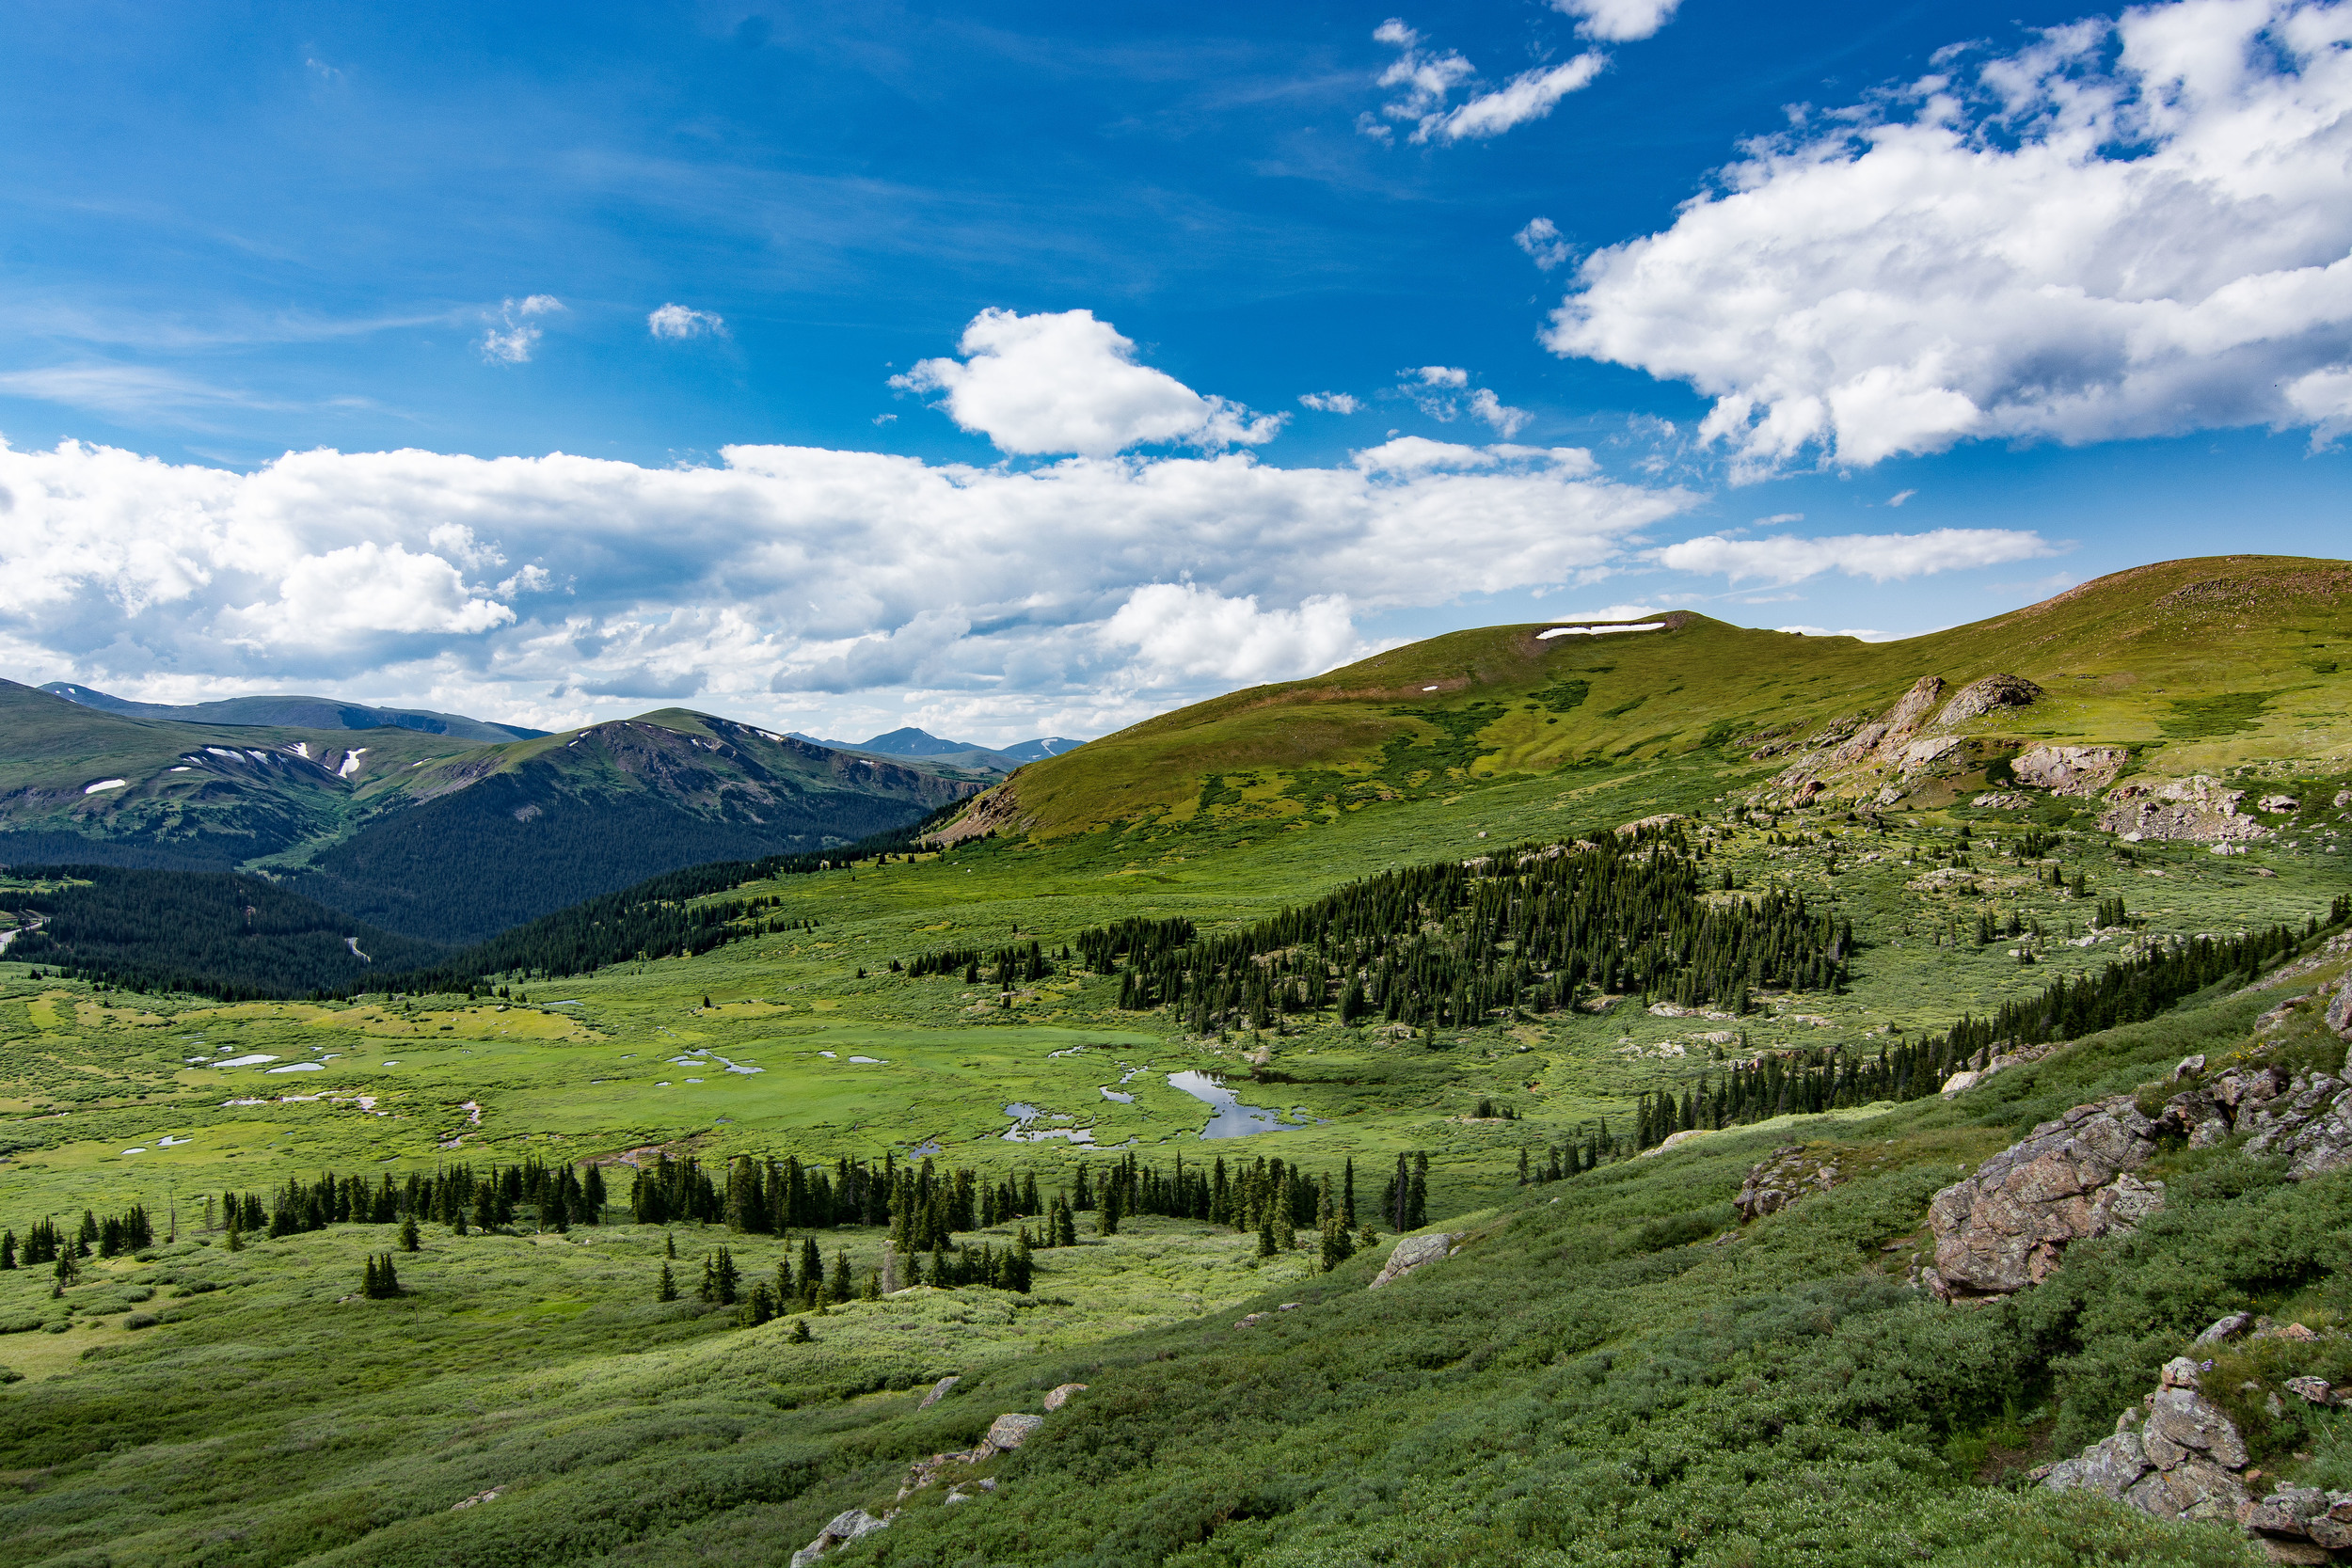 At the foot of Mt. Bierstadt, Front Range, Rocky Mountains. Beauty at 12,000 feet.